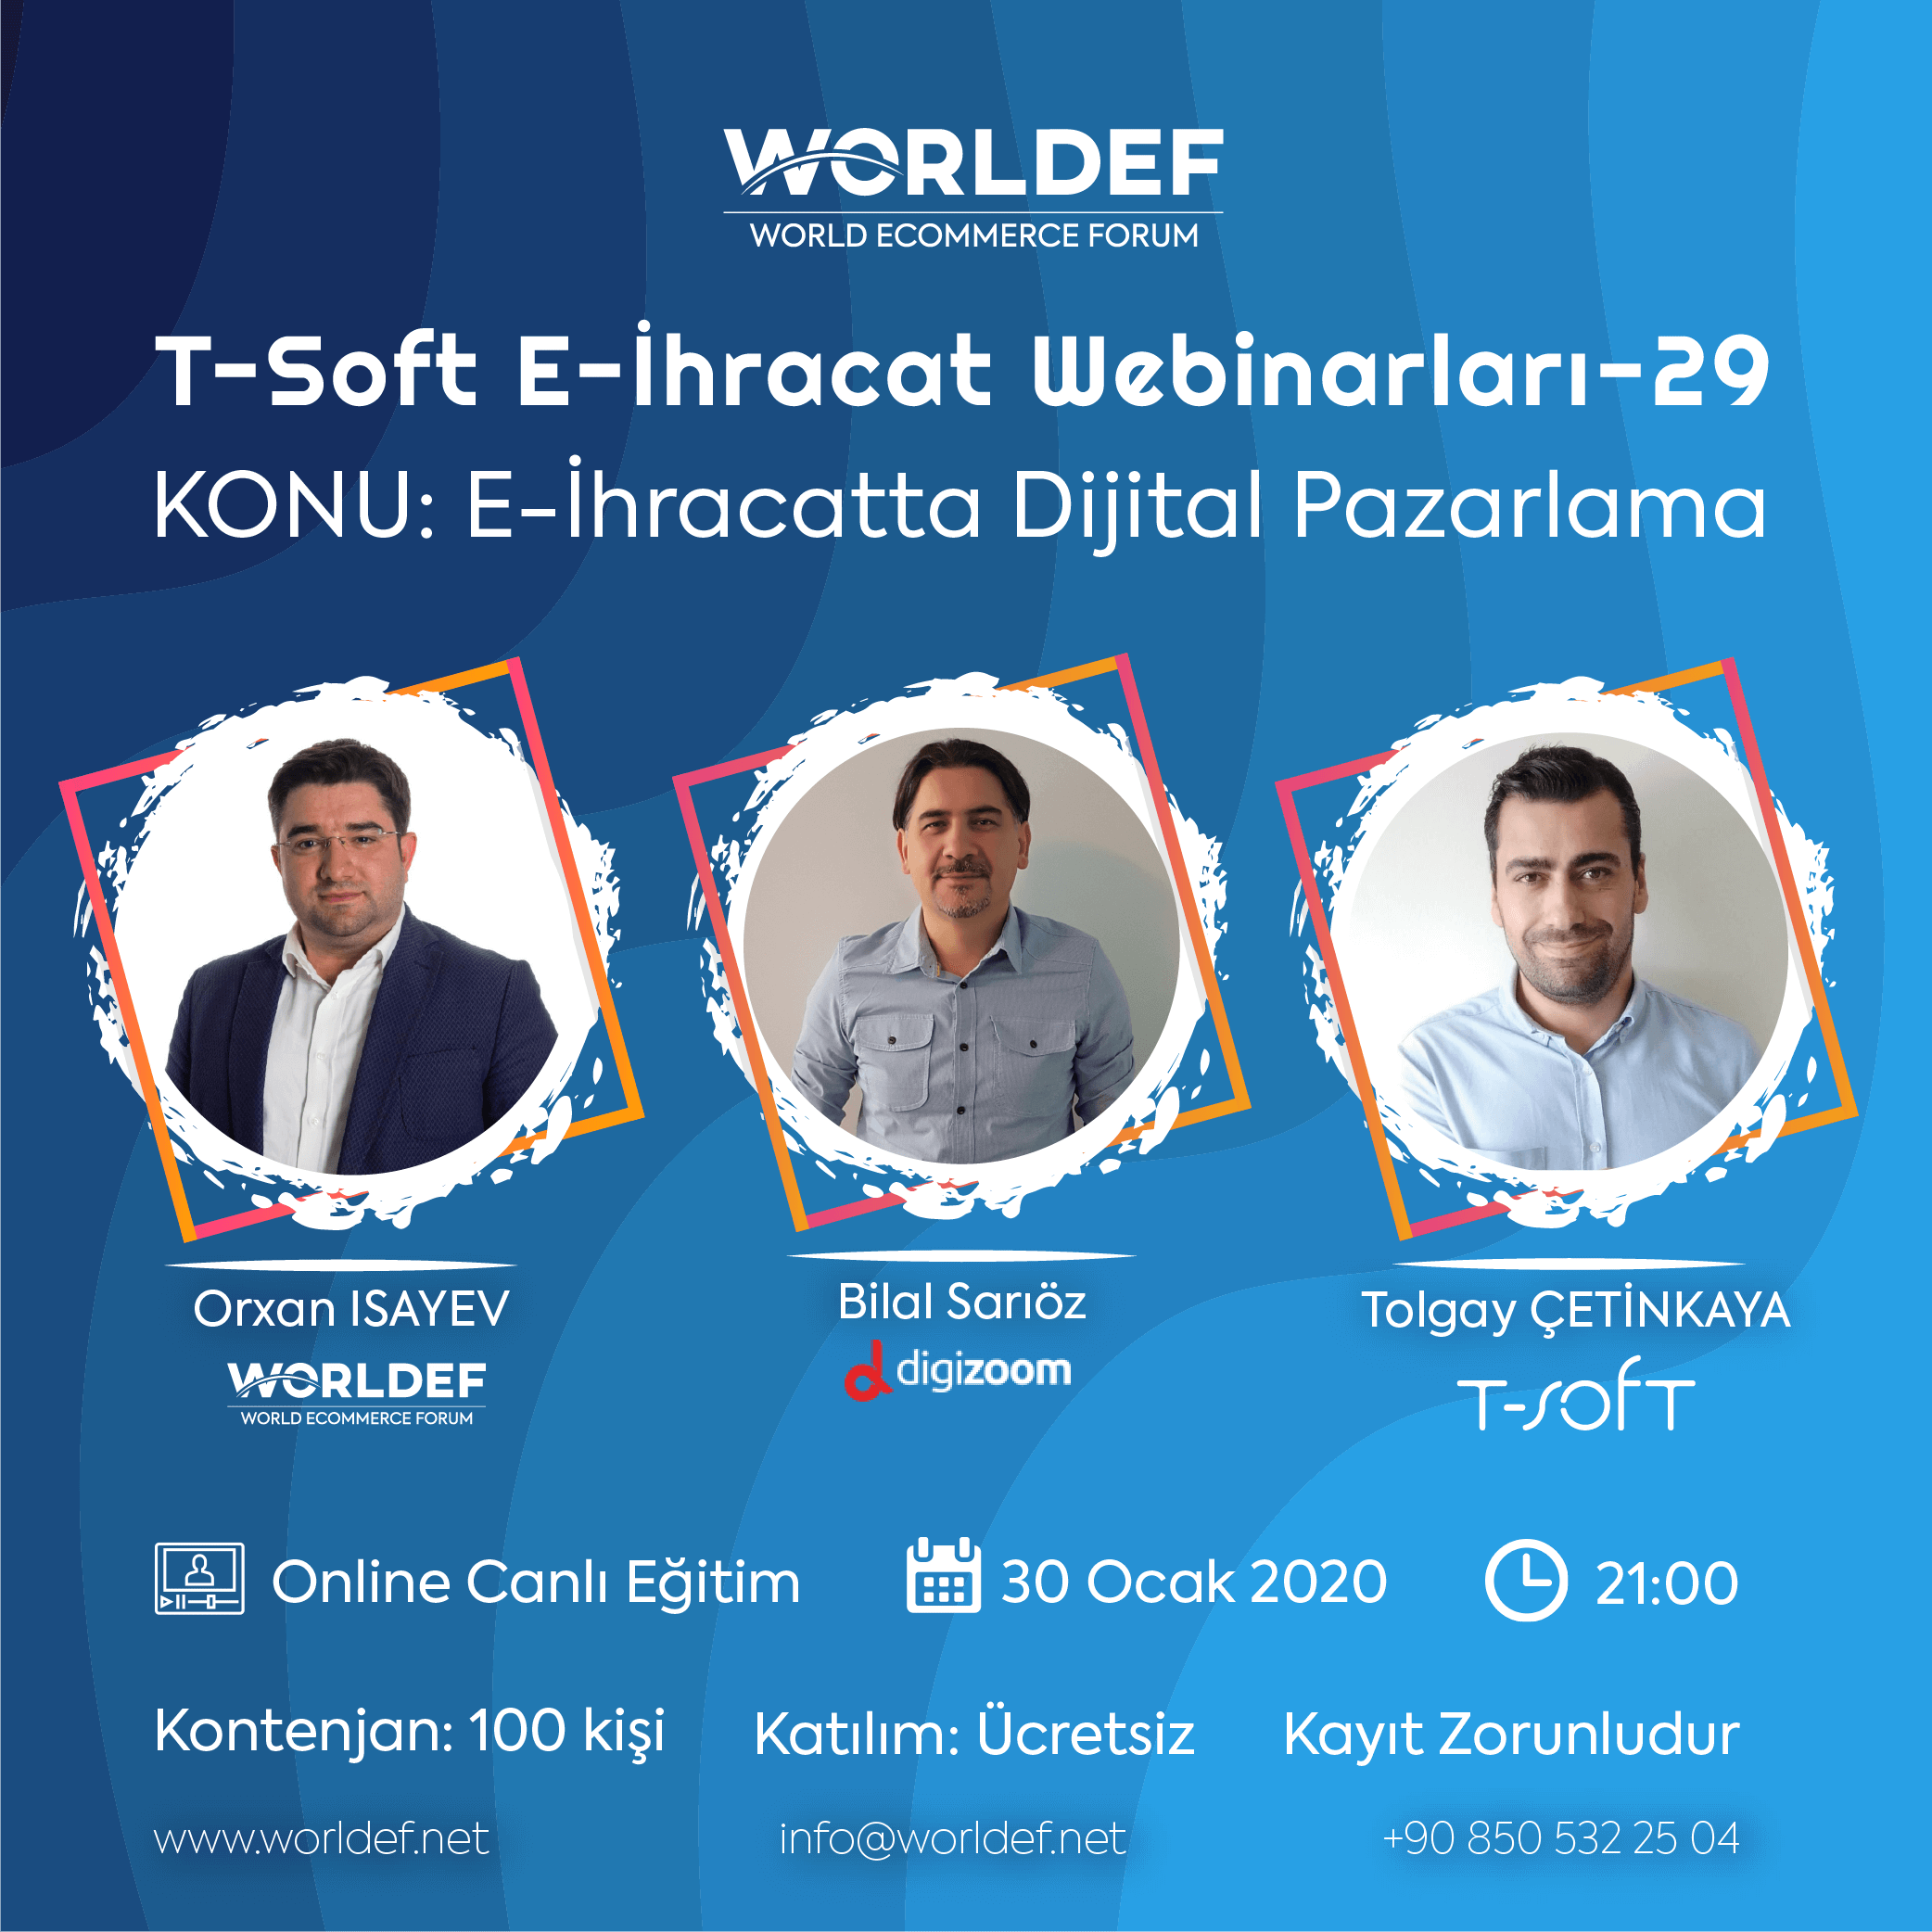 Bilal Sarıöz, the founding partner and technical manager of Digizoom Digital Marketing, will be our guest in the week of cross-border e-commerce webinars!